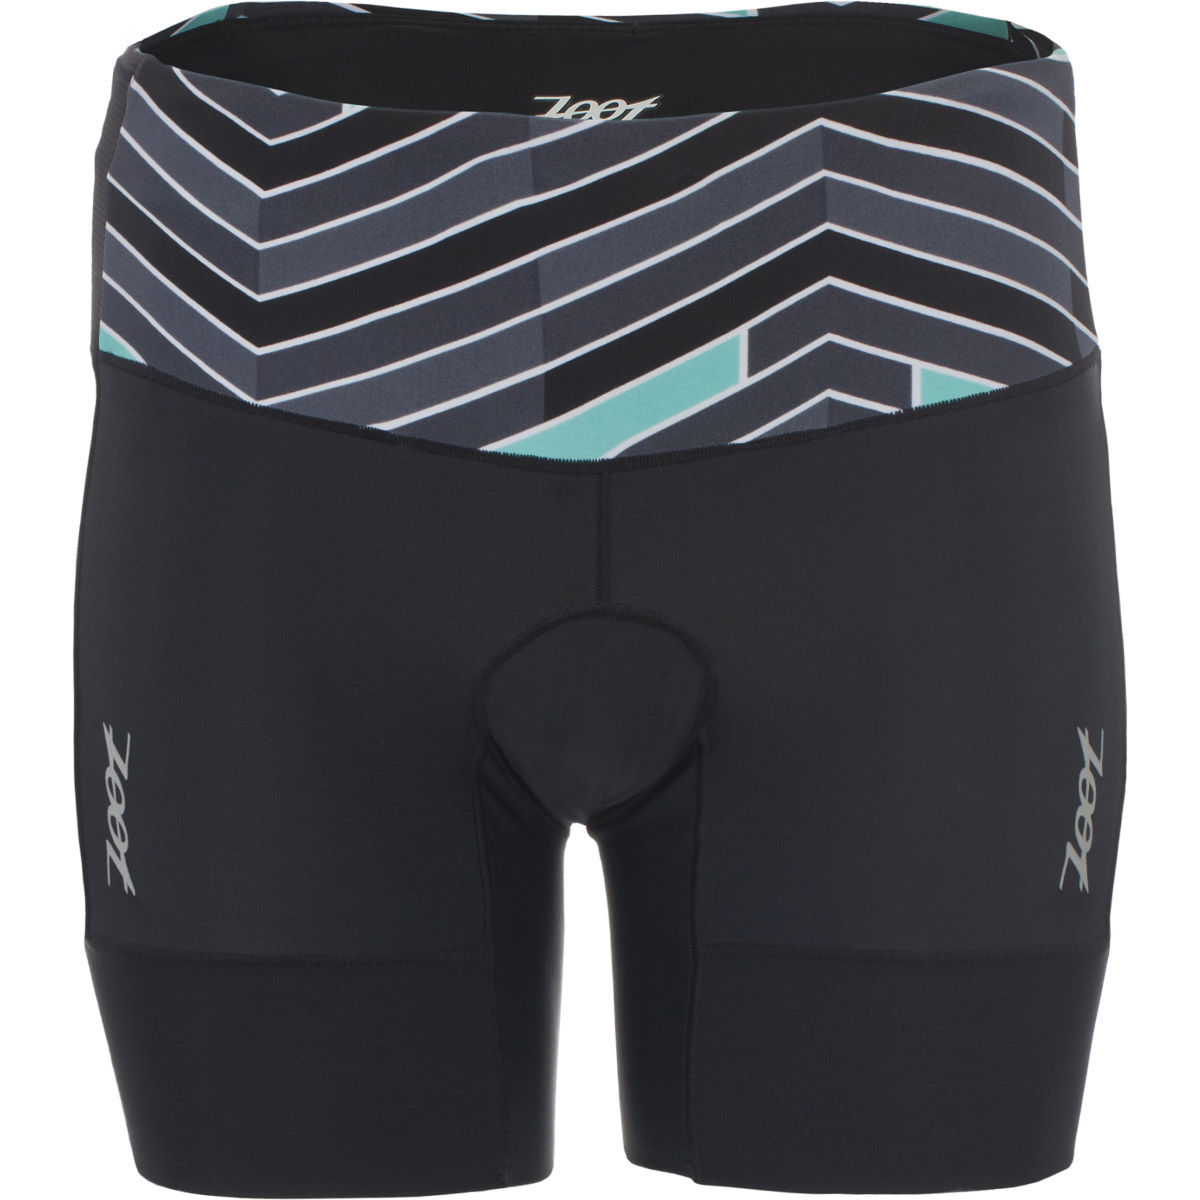 Cuissard de triathlon Femme Zoot Performance (15,2 cm, 2016) - XS Waves/Black Cuissards de triathlon